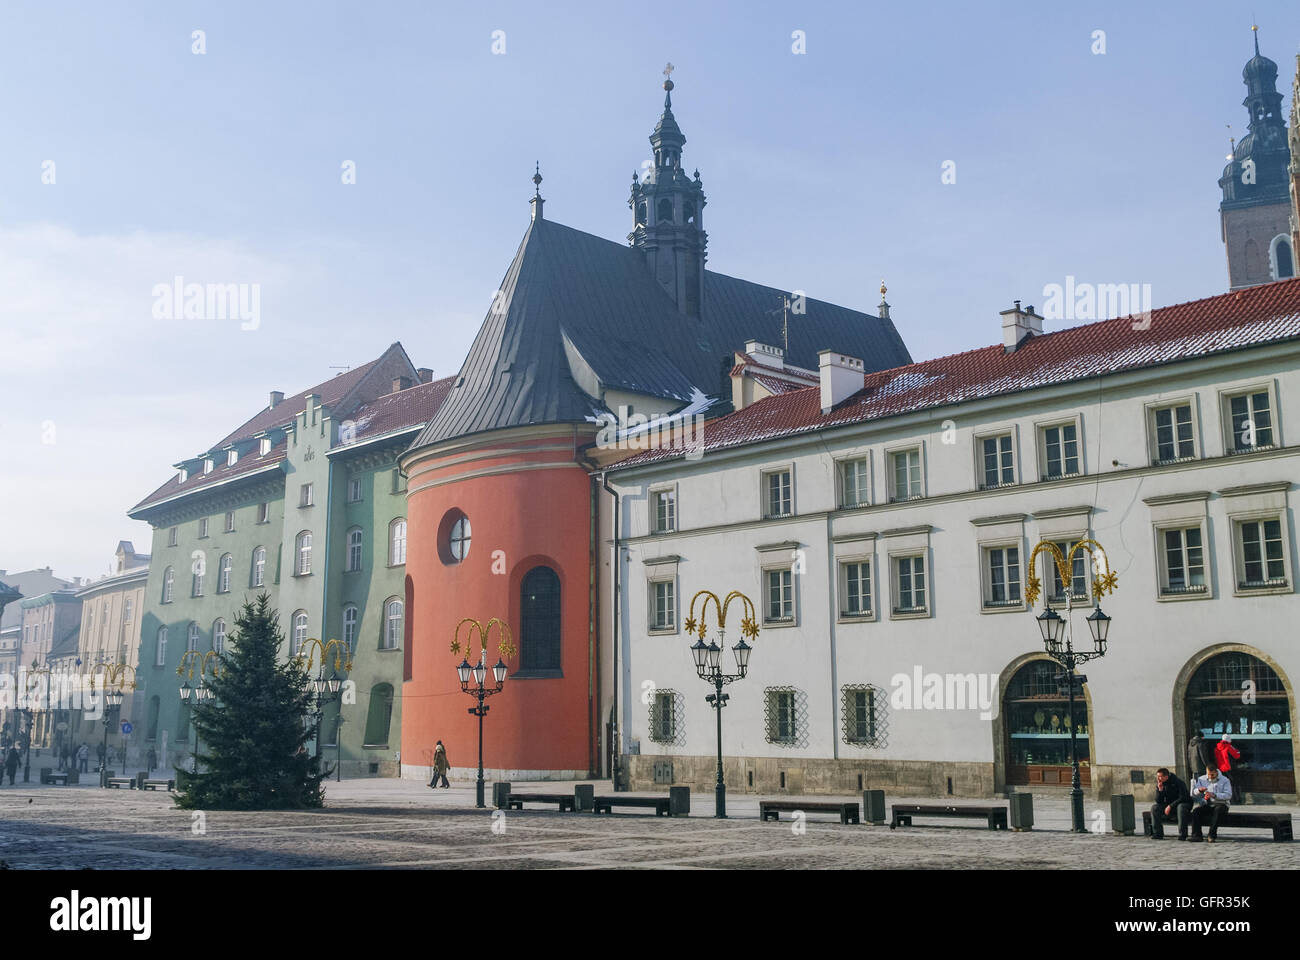 Krakow, Poland - January 6, 2011: The rounded coral-colour choir of St. Barbara's church flanked by 17-18th - Stock Image